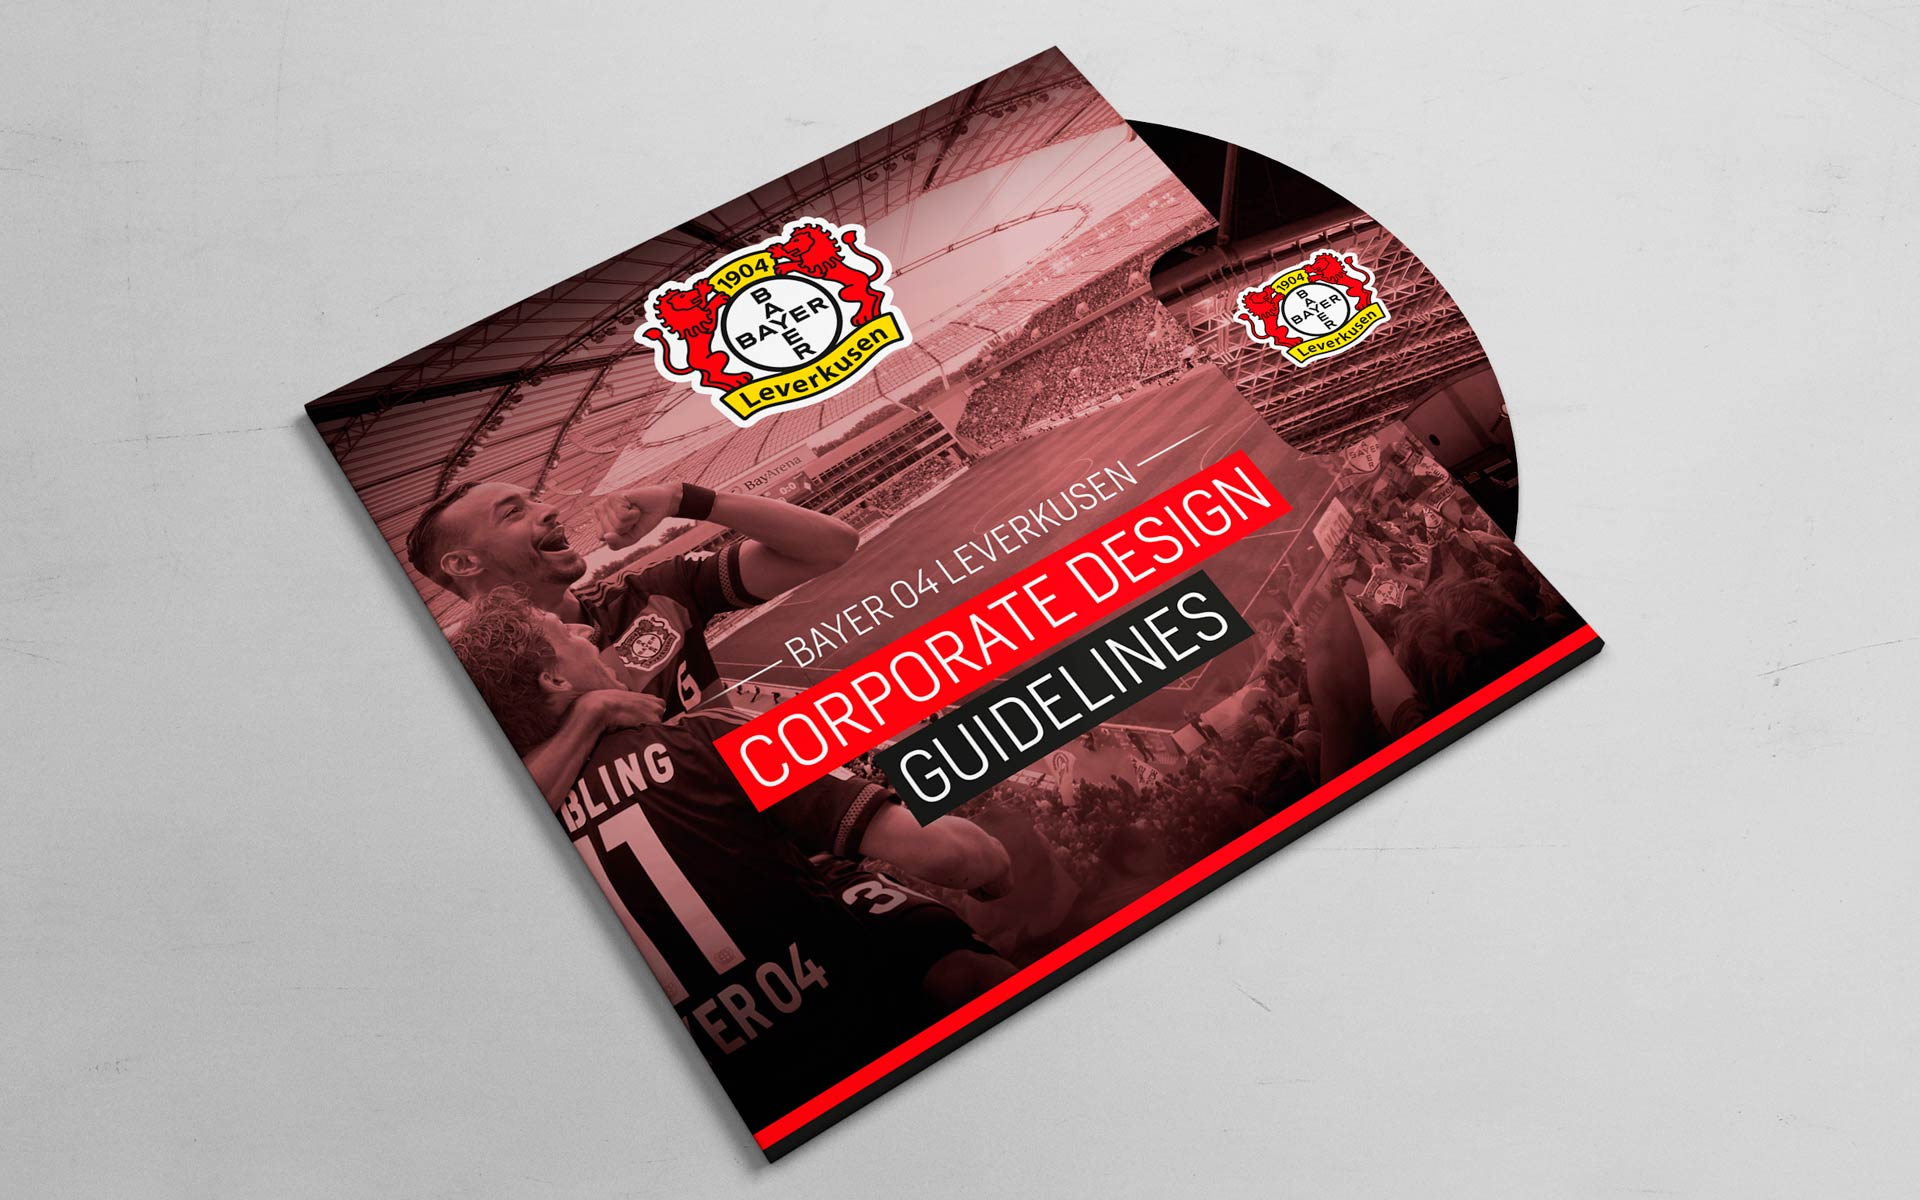 Bayer 04 Leverkusen Corporate Design, CD-Guidelines auf DVD